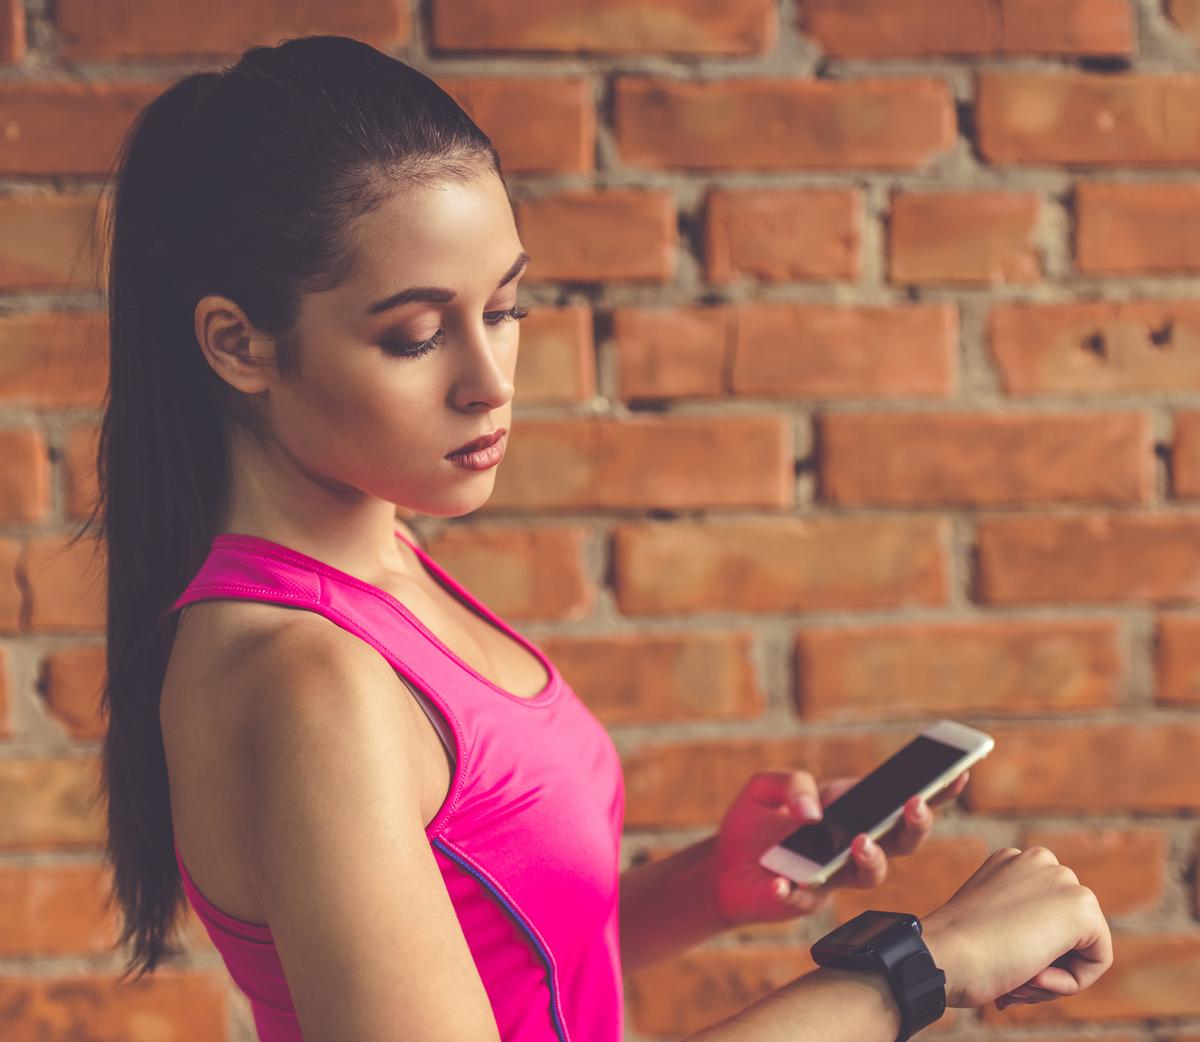 Gadgets such as Fitbits and tablets are among the most popular rewards chosen by employees / Shutterstock